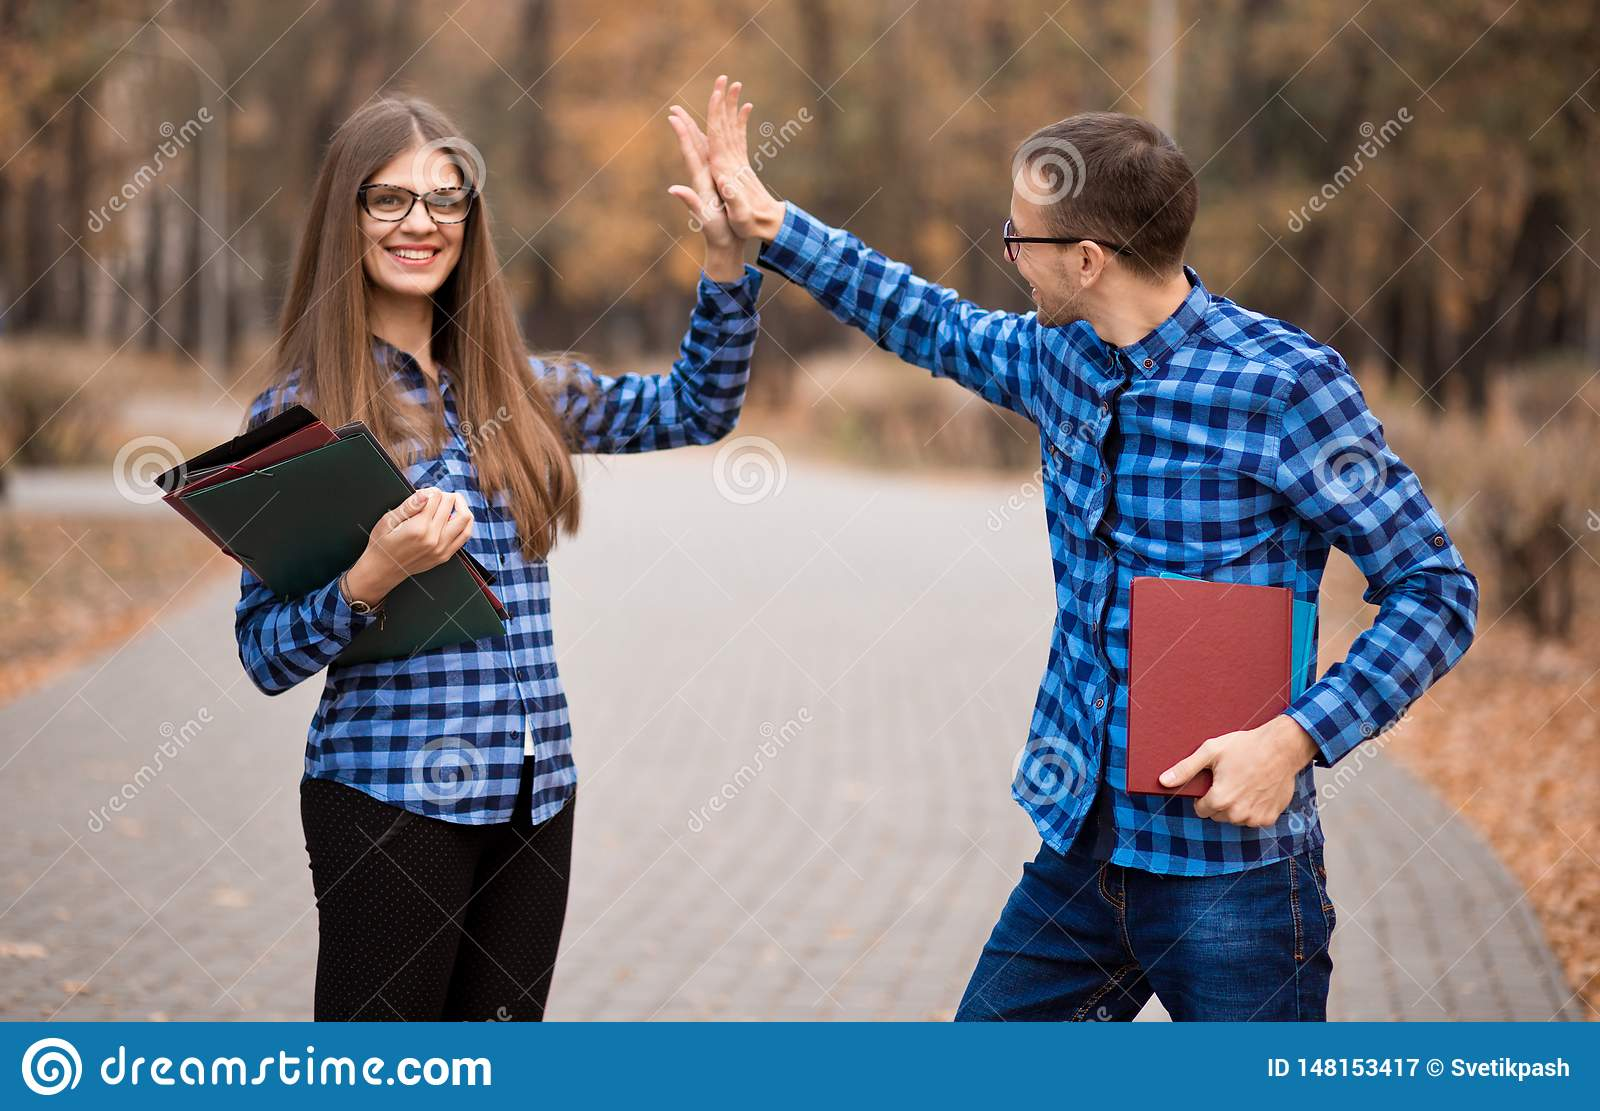 Excited man and woman screaming with joy raising hands, happy young couple celebrate online win victory, goal achievement